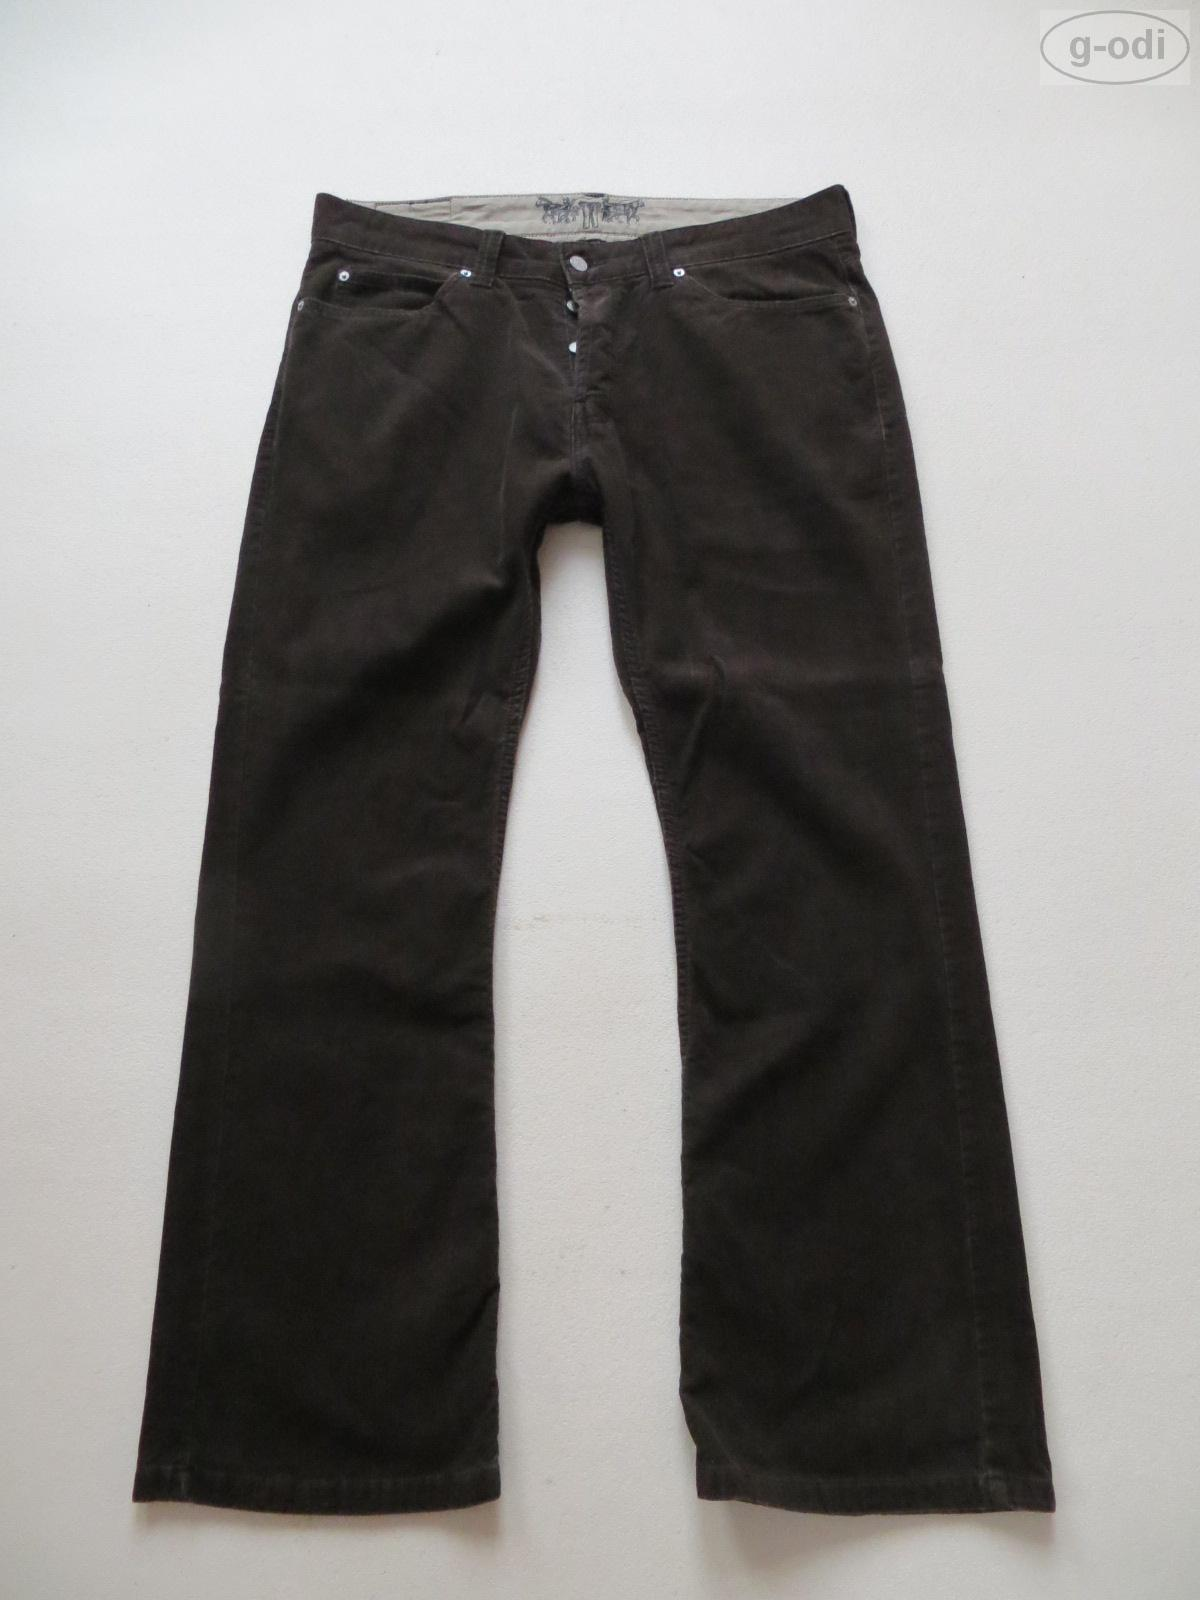 levi 39 s 512 cord bootcut jeans hose w 38 l 32 braun cordhose gr 54 rar ebay. Black Bedroom Furniture Sets. Home Design Ideas